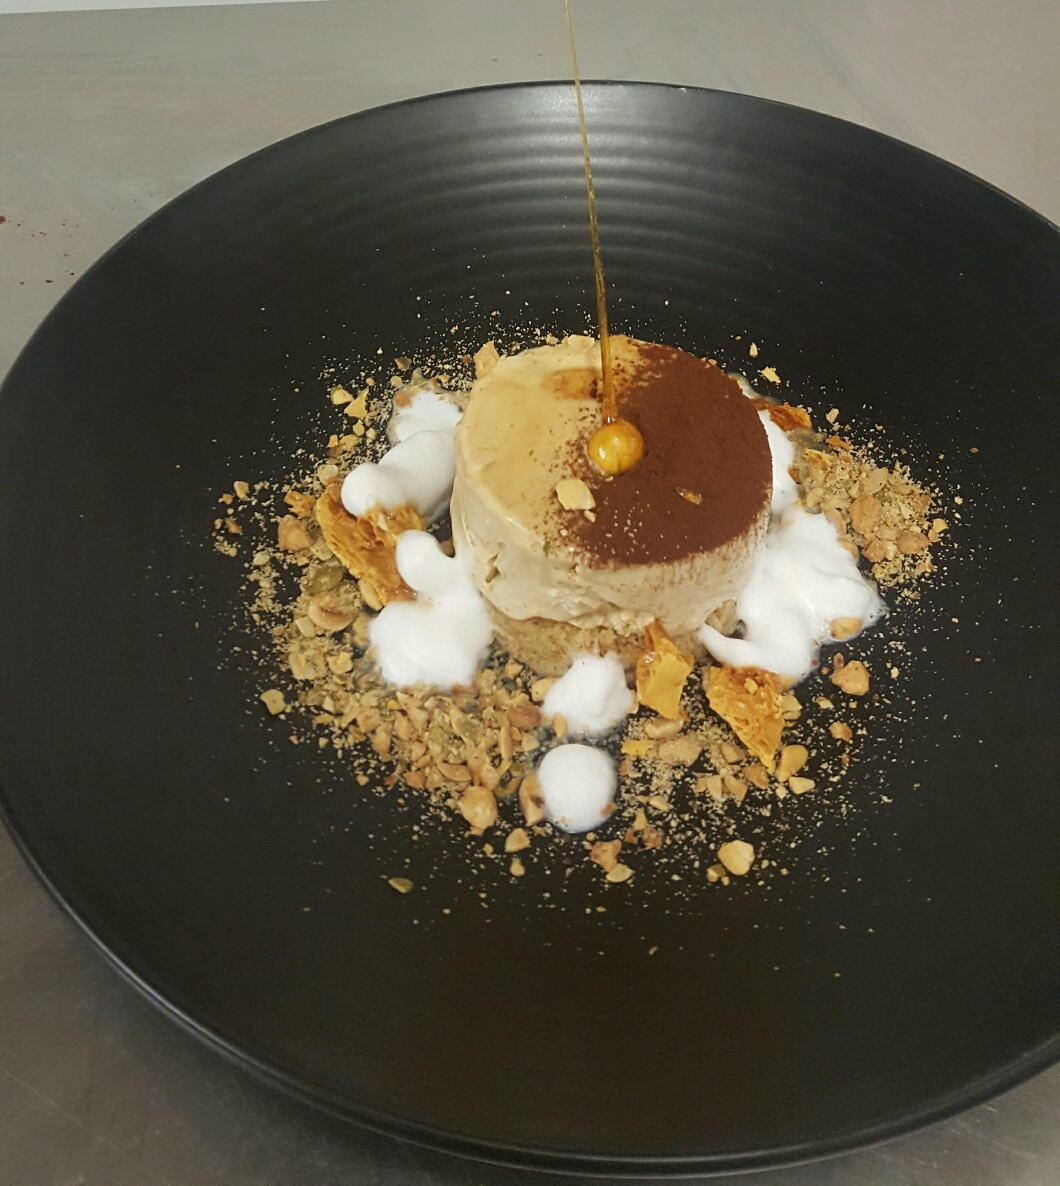 The winning entry,  a delicious iced coffee parfait, banana bread and milk foam dessert, was made using typical kitchen left-overs!